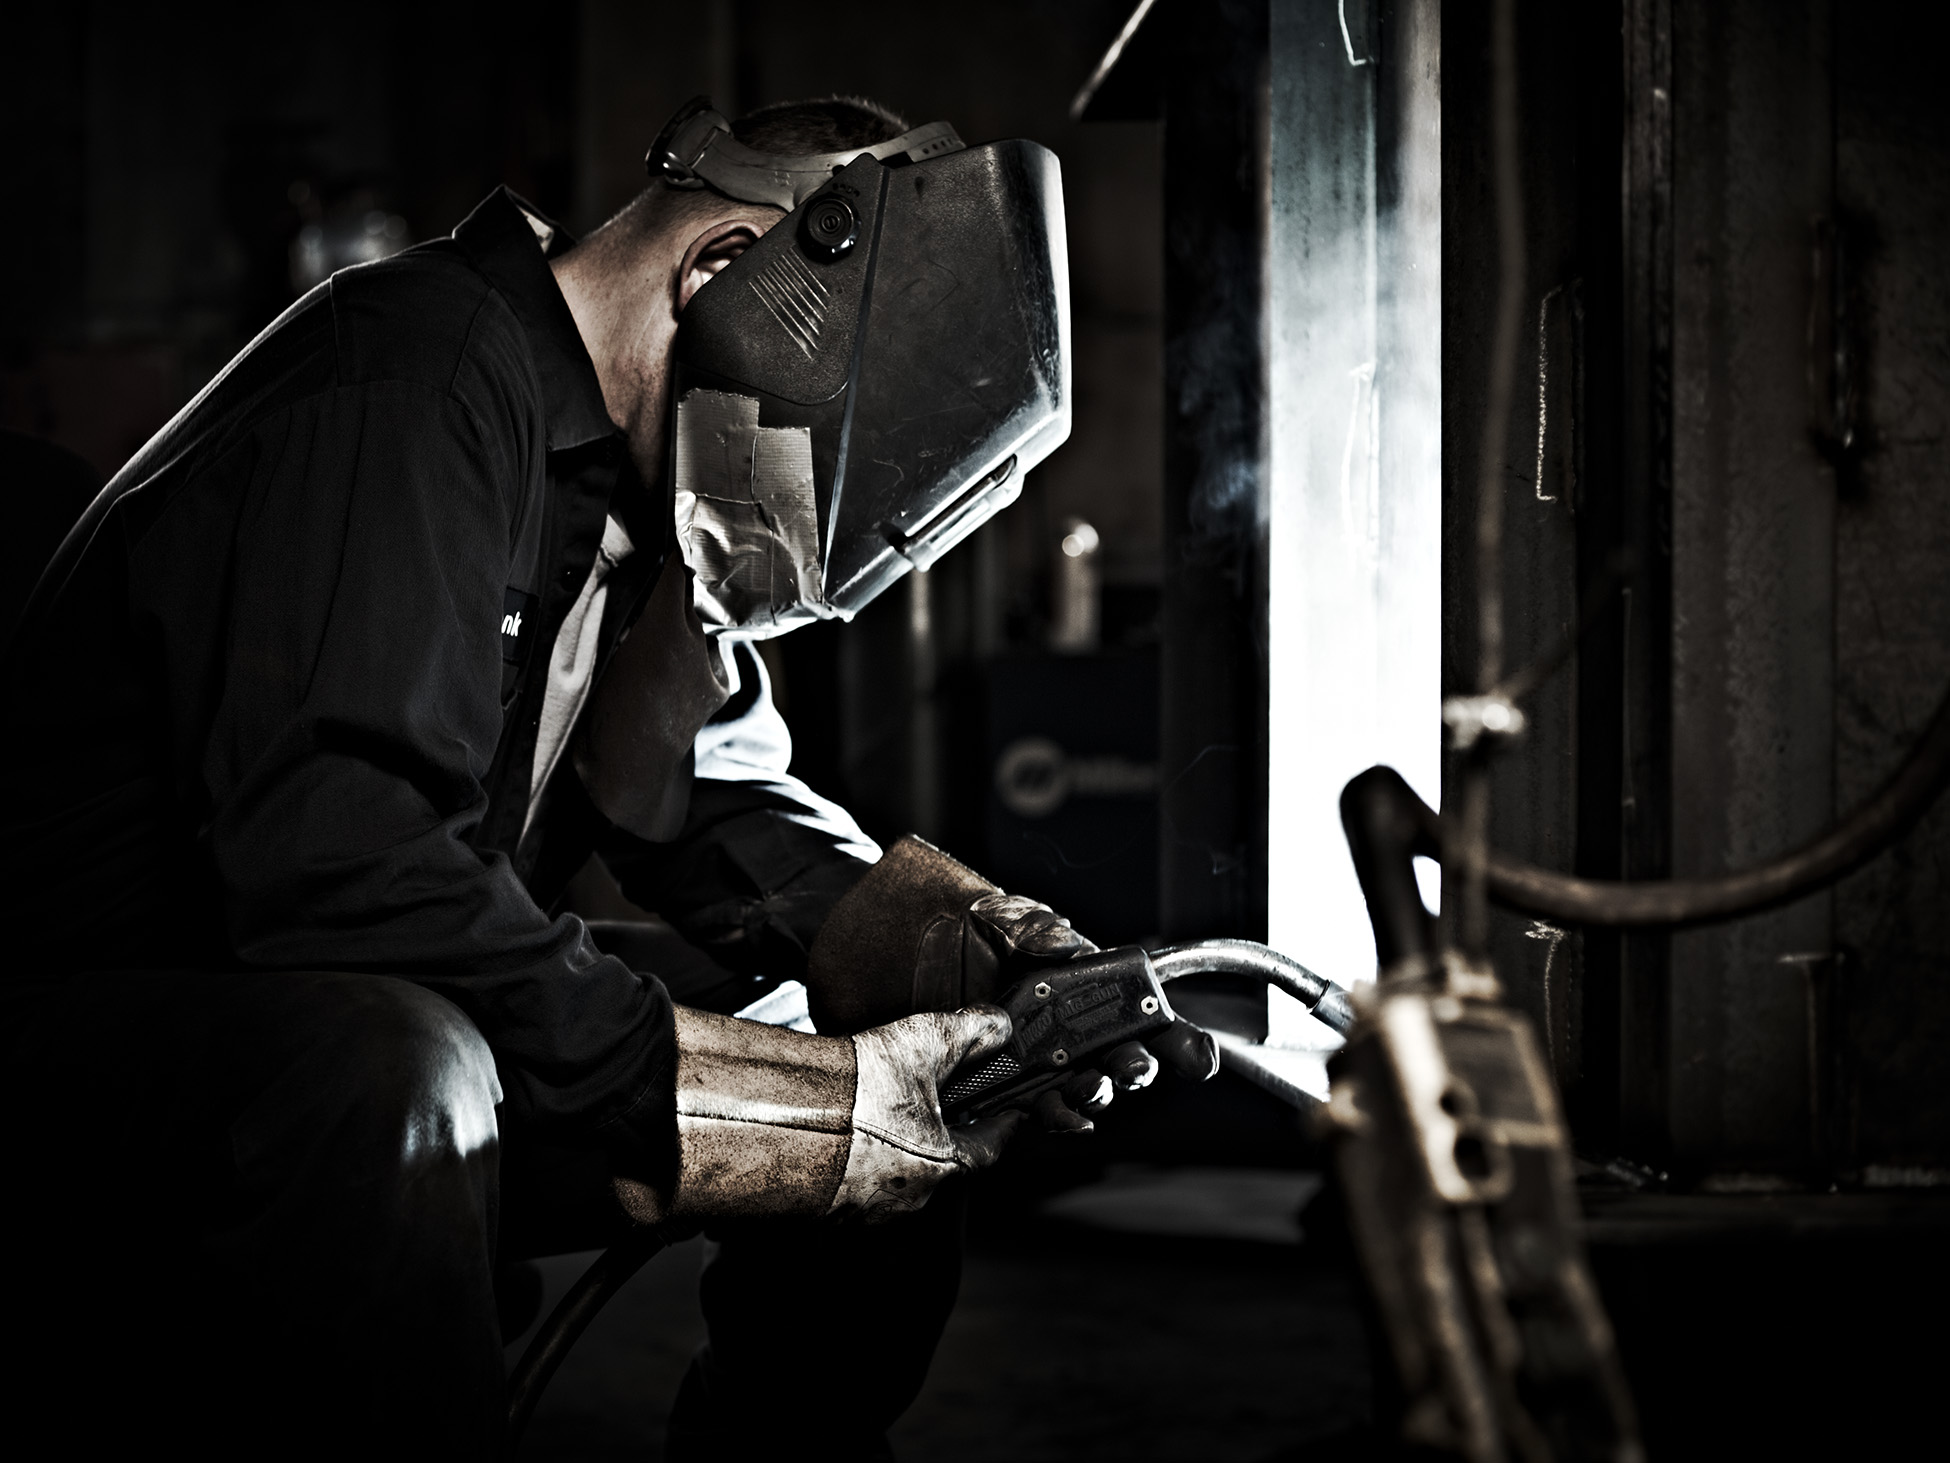 Commercial Photography Portrait of an Industrial Welder by Travis Neely Photography